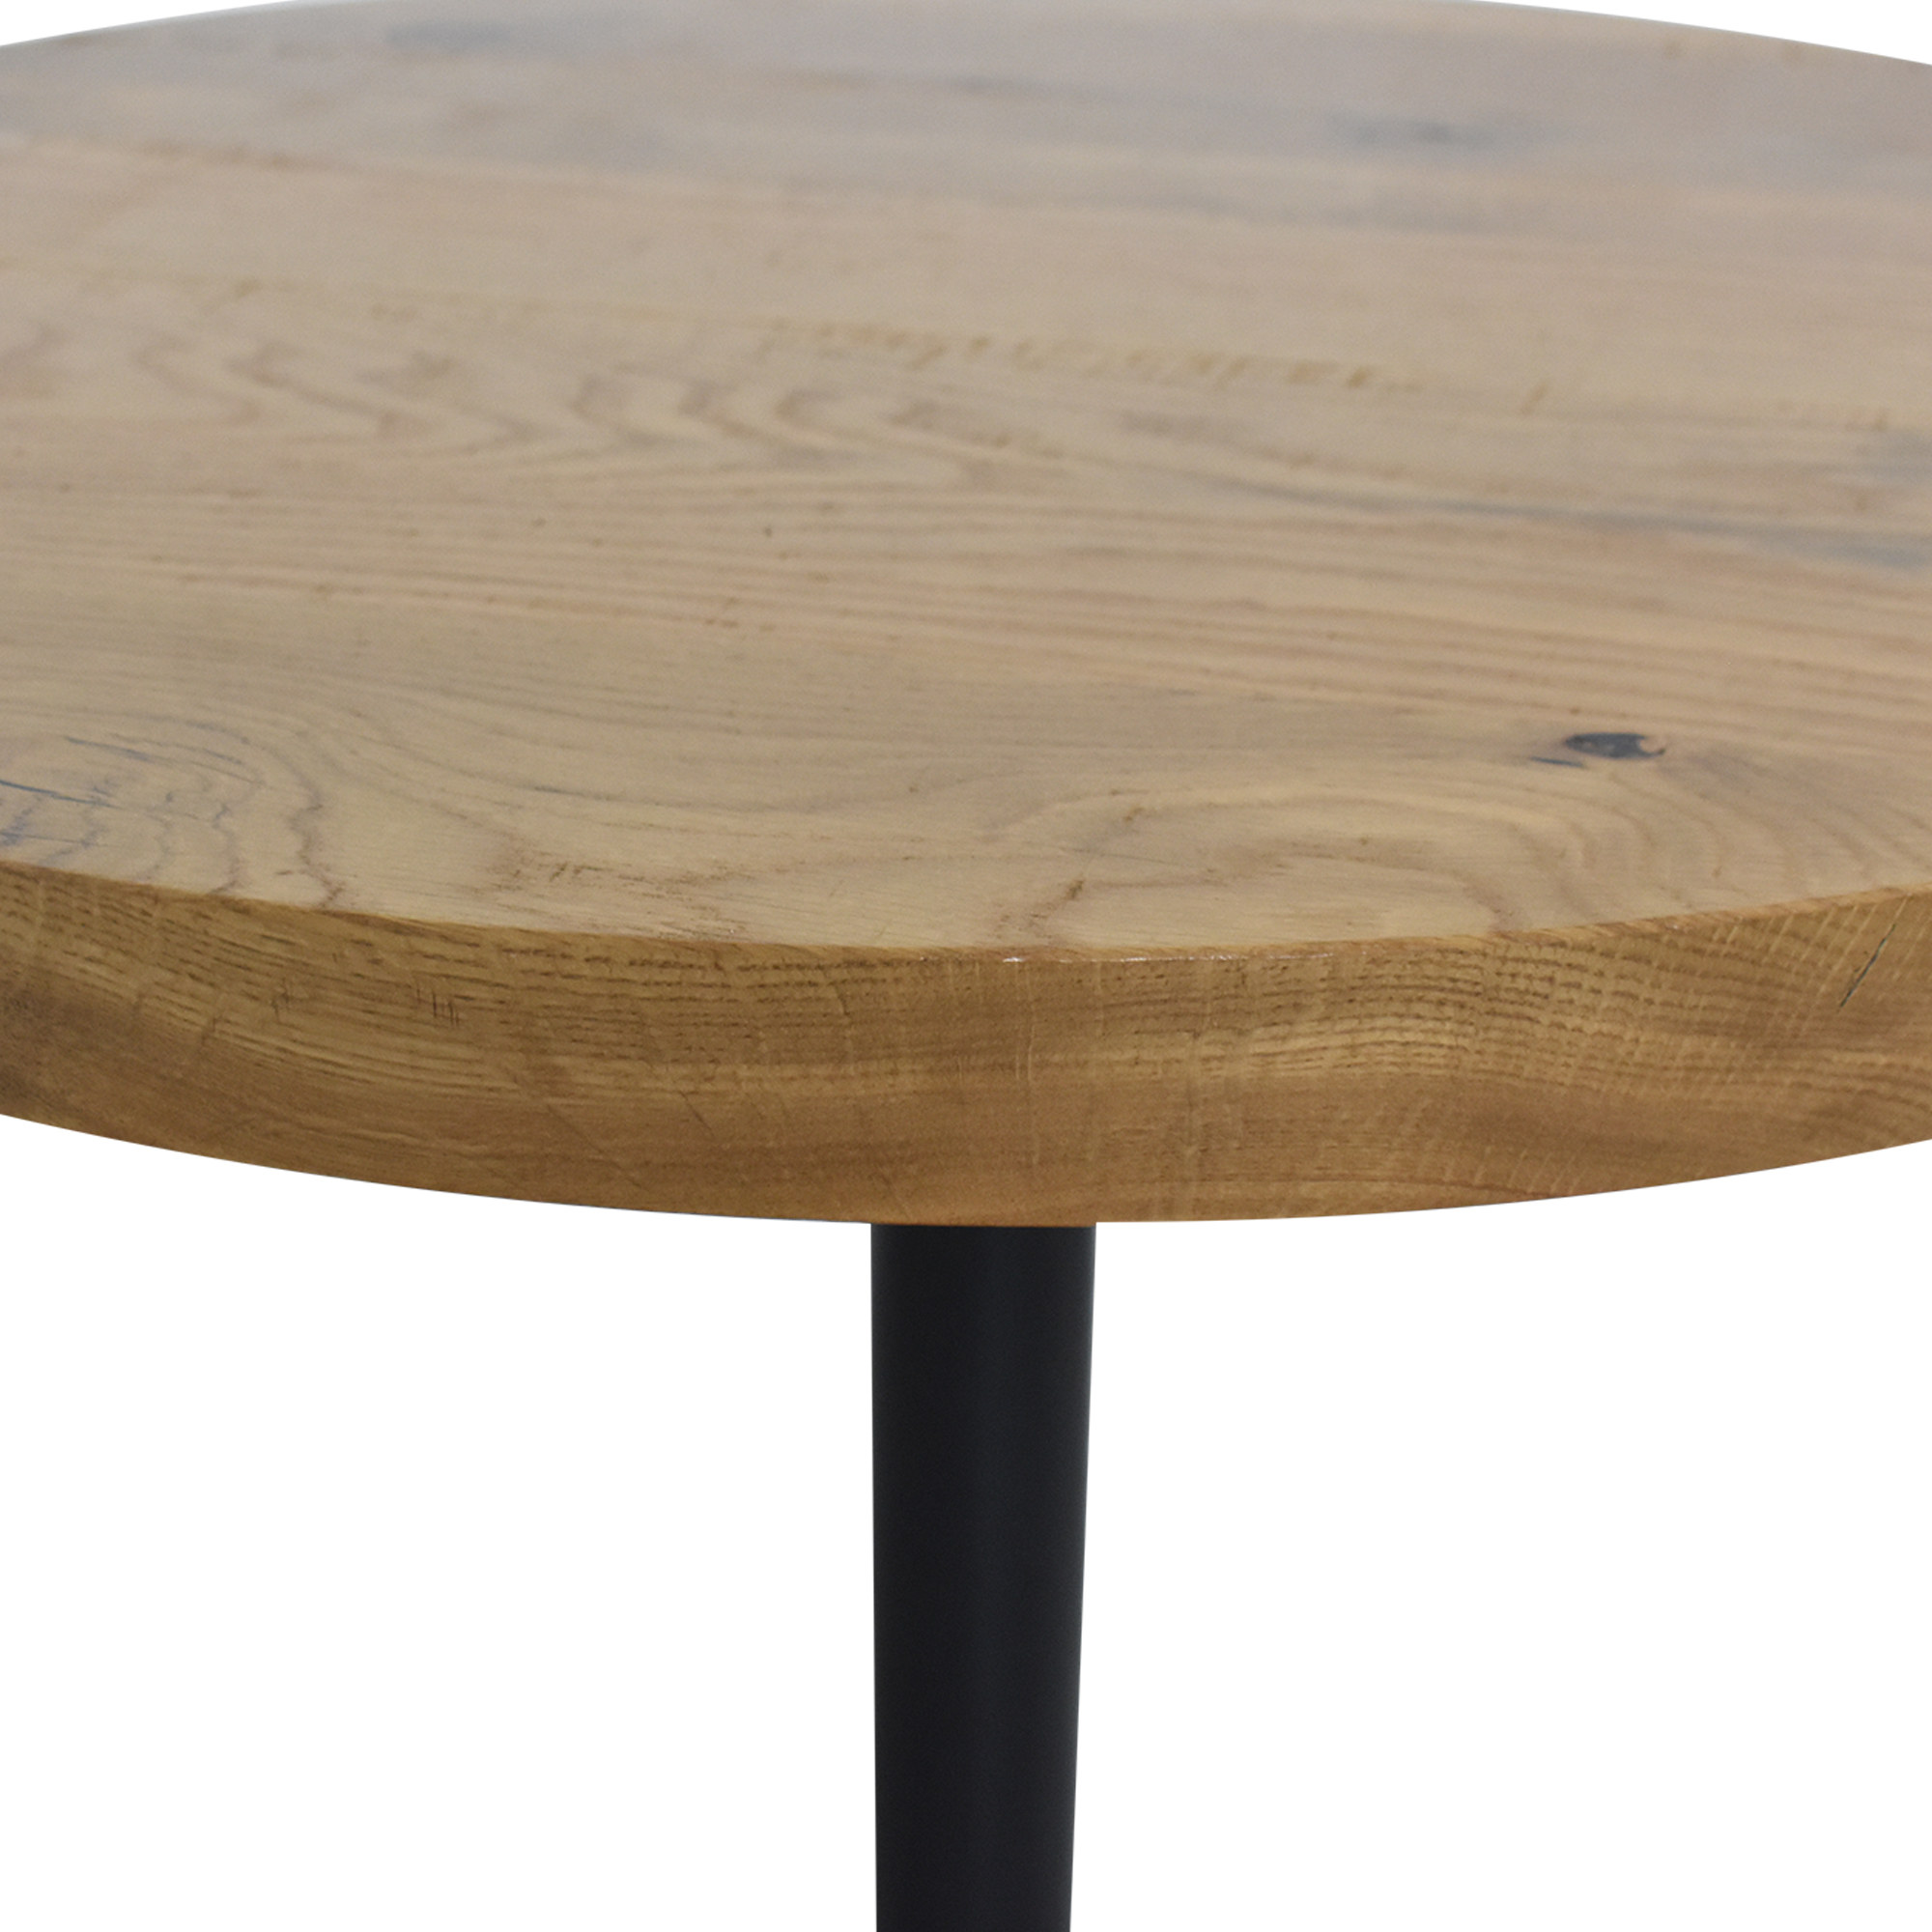 Crow Works Crow Works Round Base Table brown & black